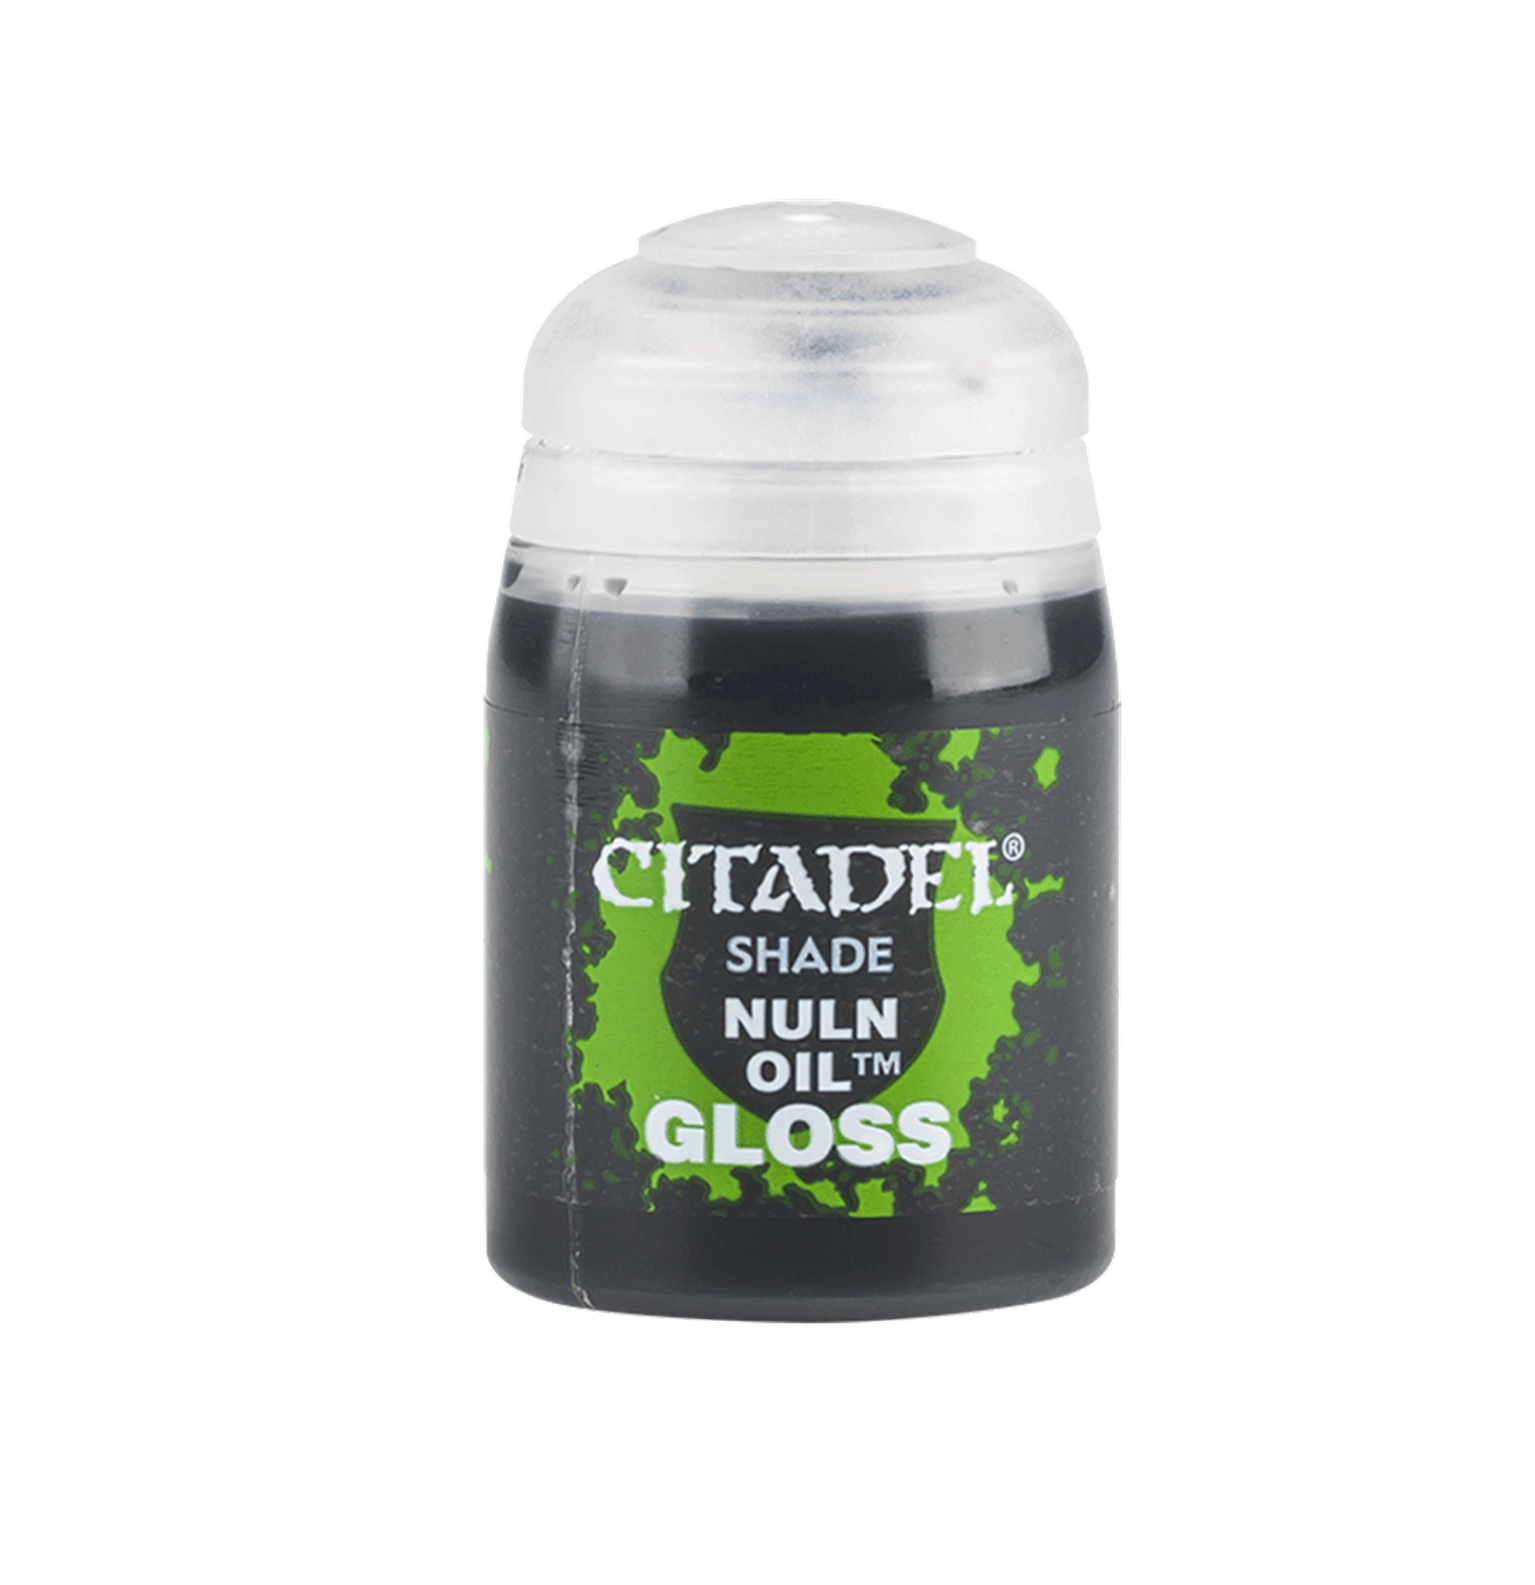 CITADEL SHADE Nuln Oil Gloss PAINT POT